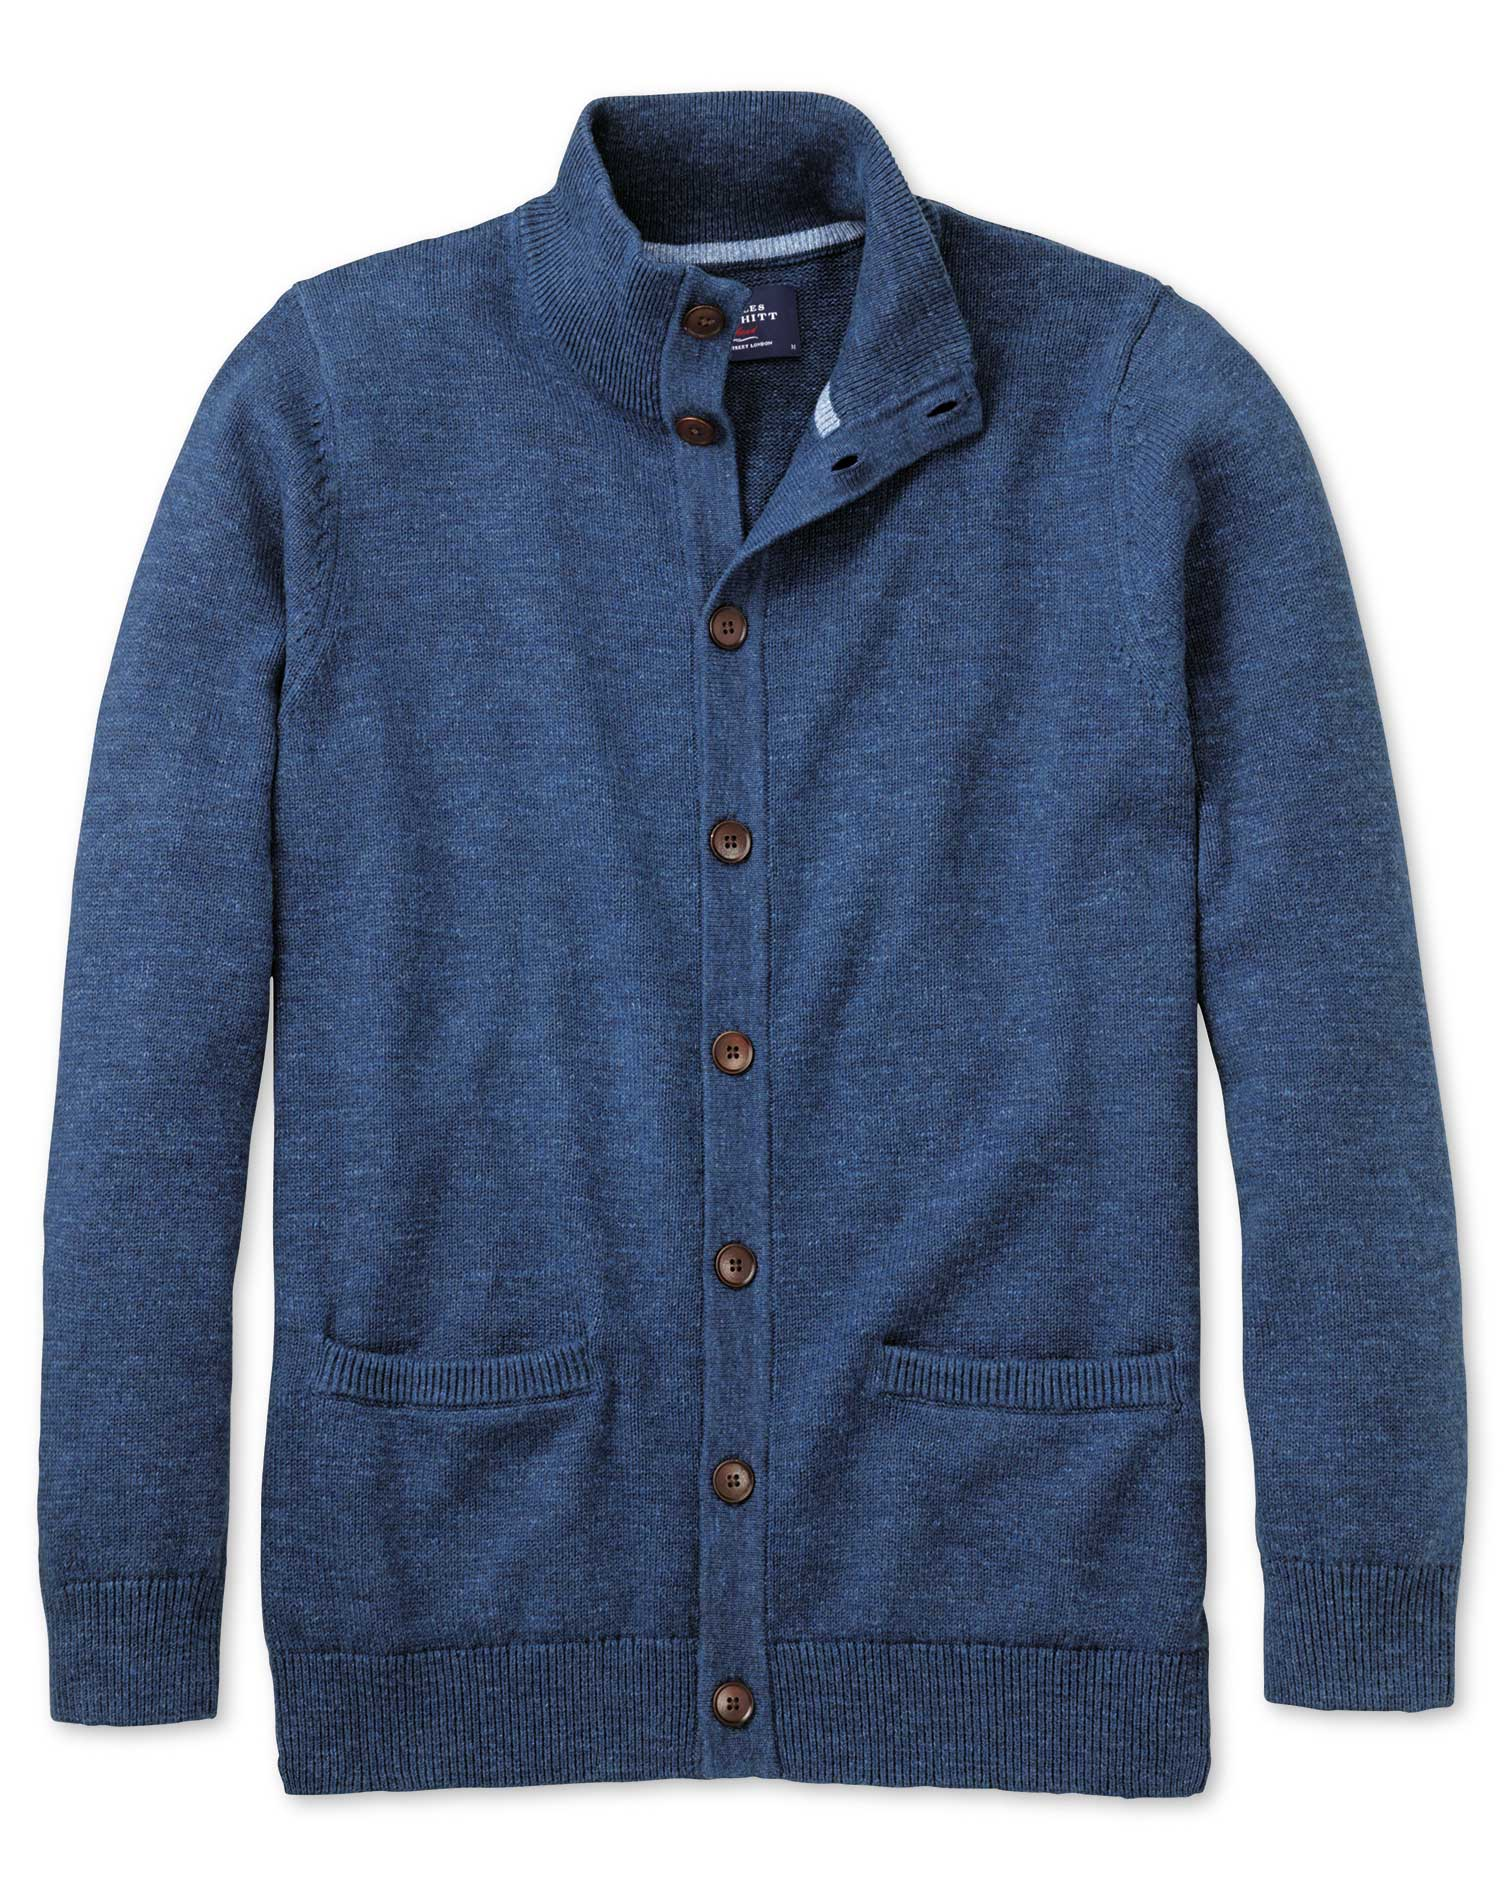 Blue Heather Button Through Cotton Cardigan Size Large by Charles Tyrwhitt